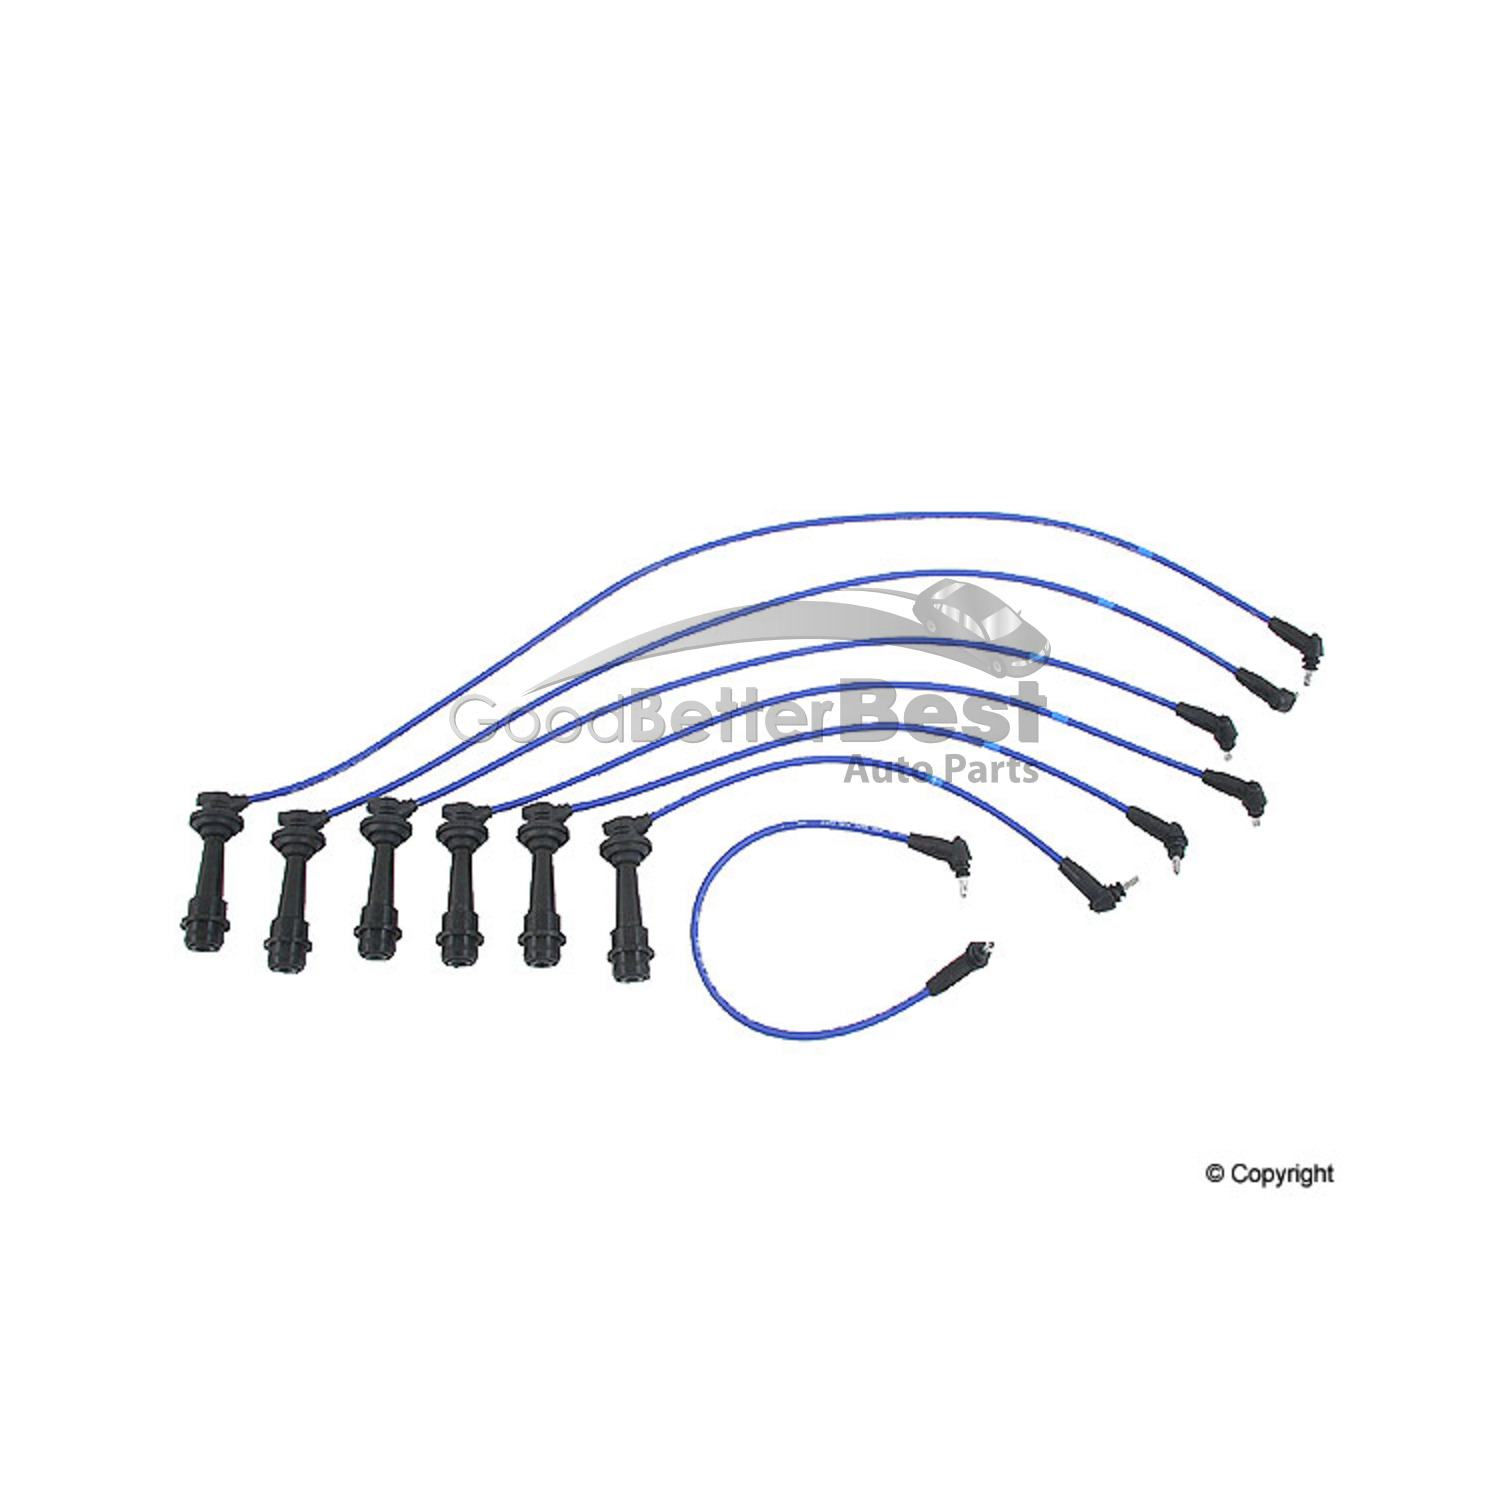 New Ngk Spark Plug Wire Set For Lexus Toyota Gs300